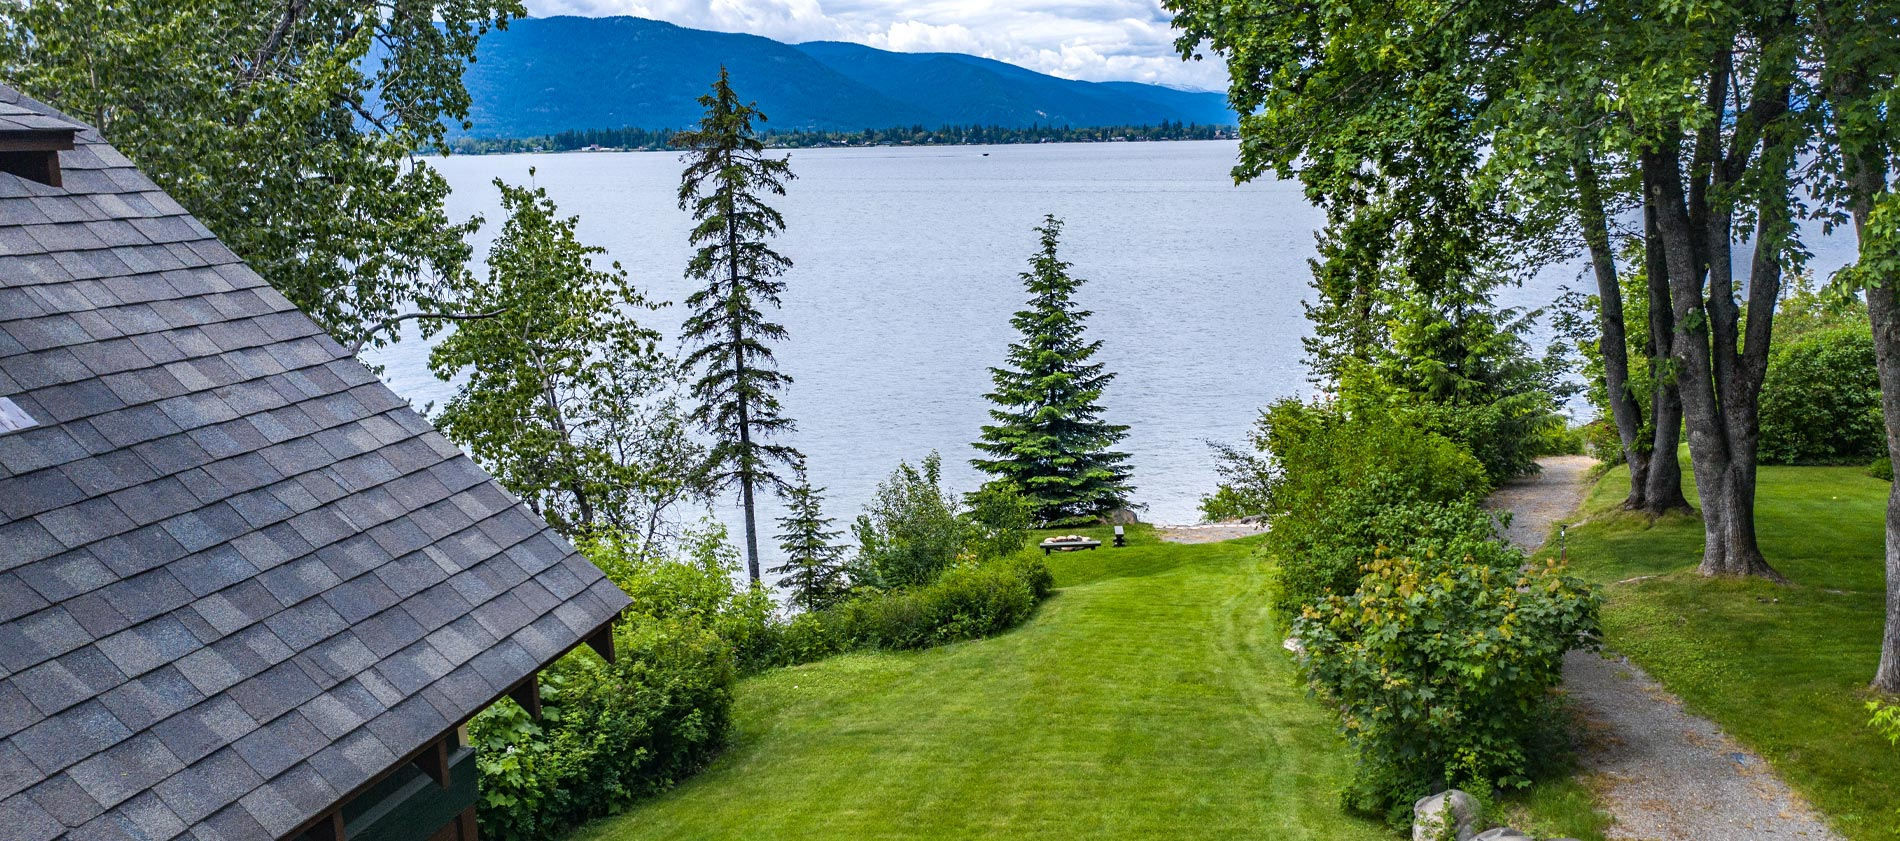 Lot for sale at Sleeps Cabins on Lake Pend Oreille